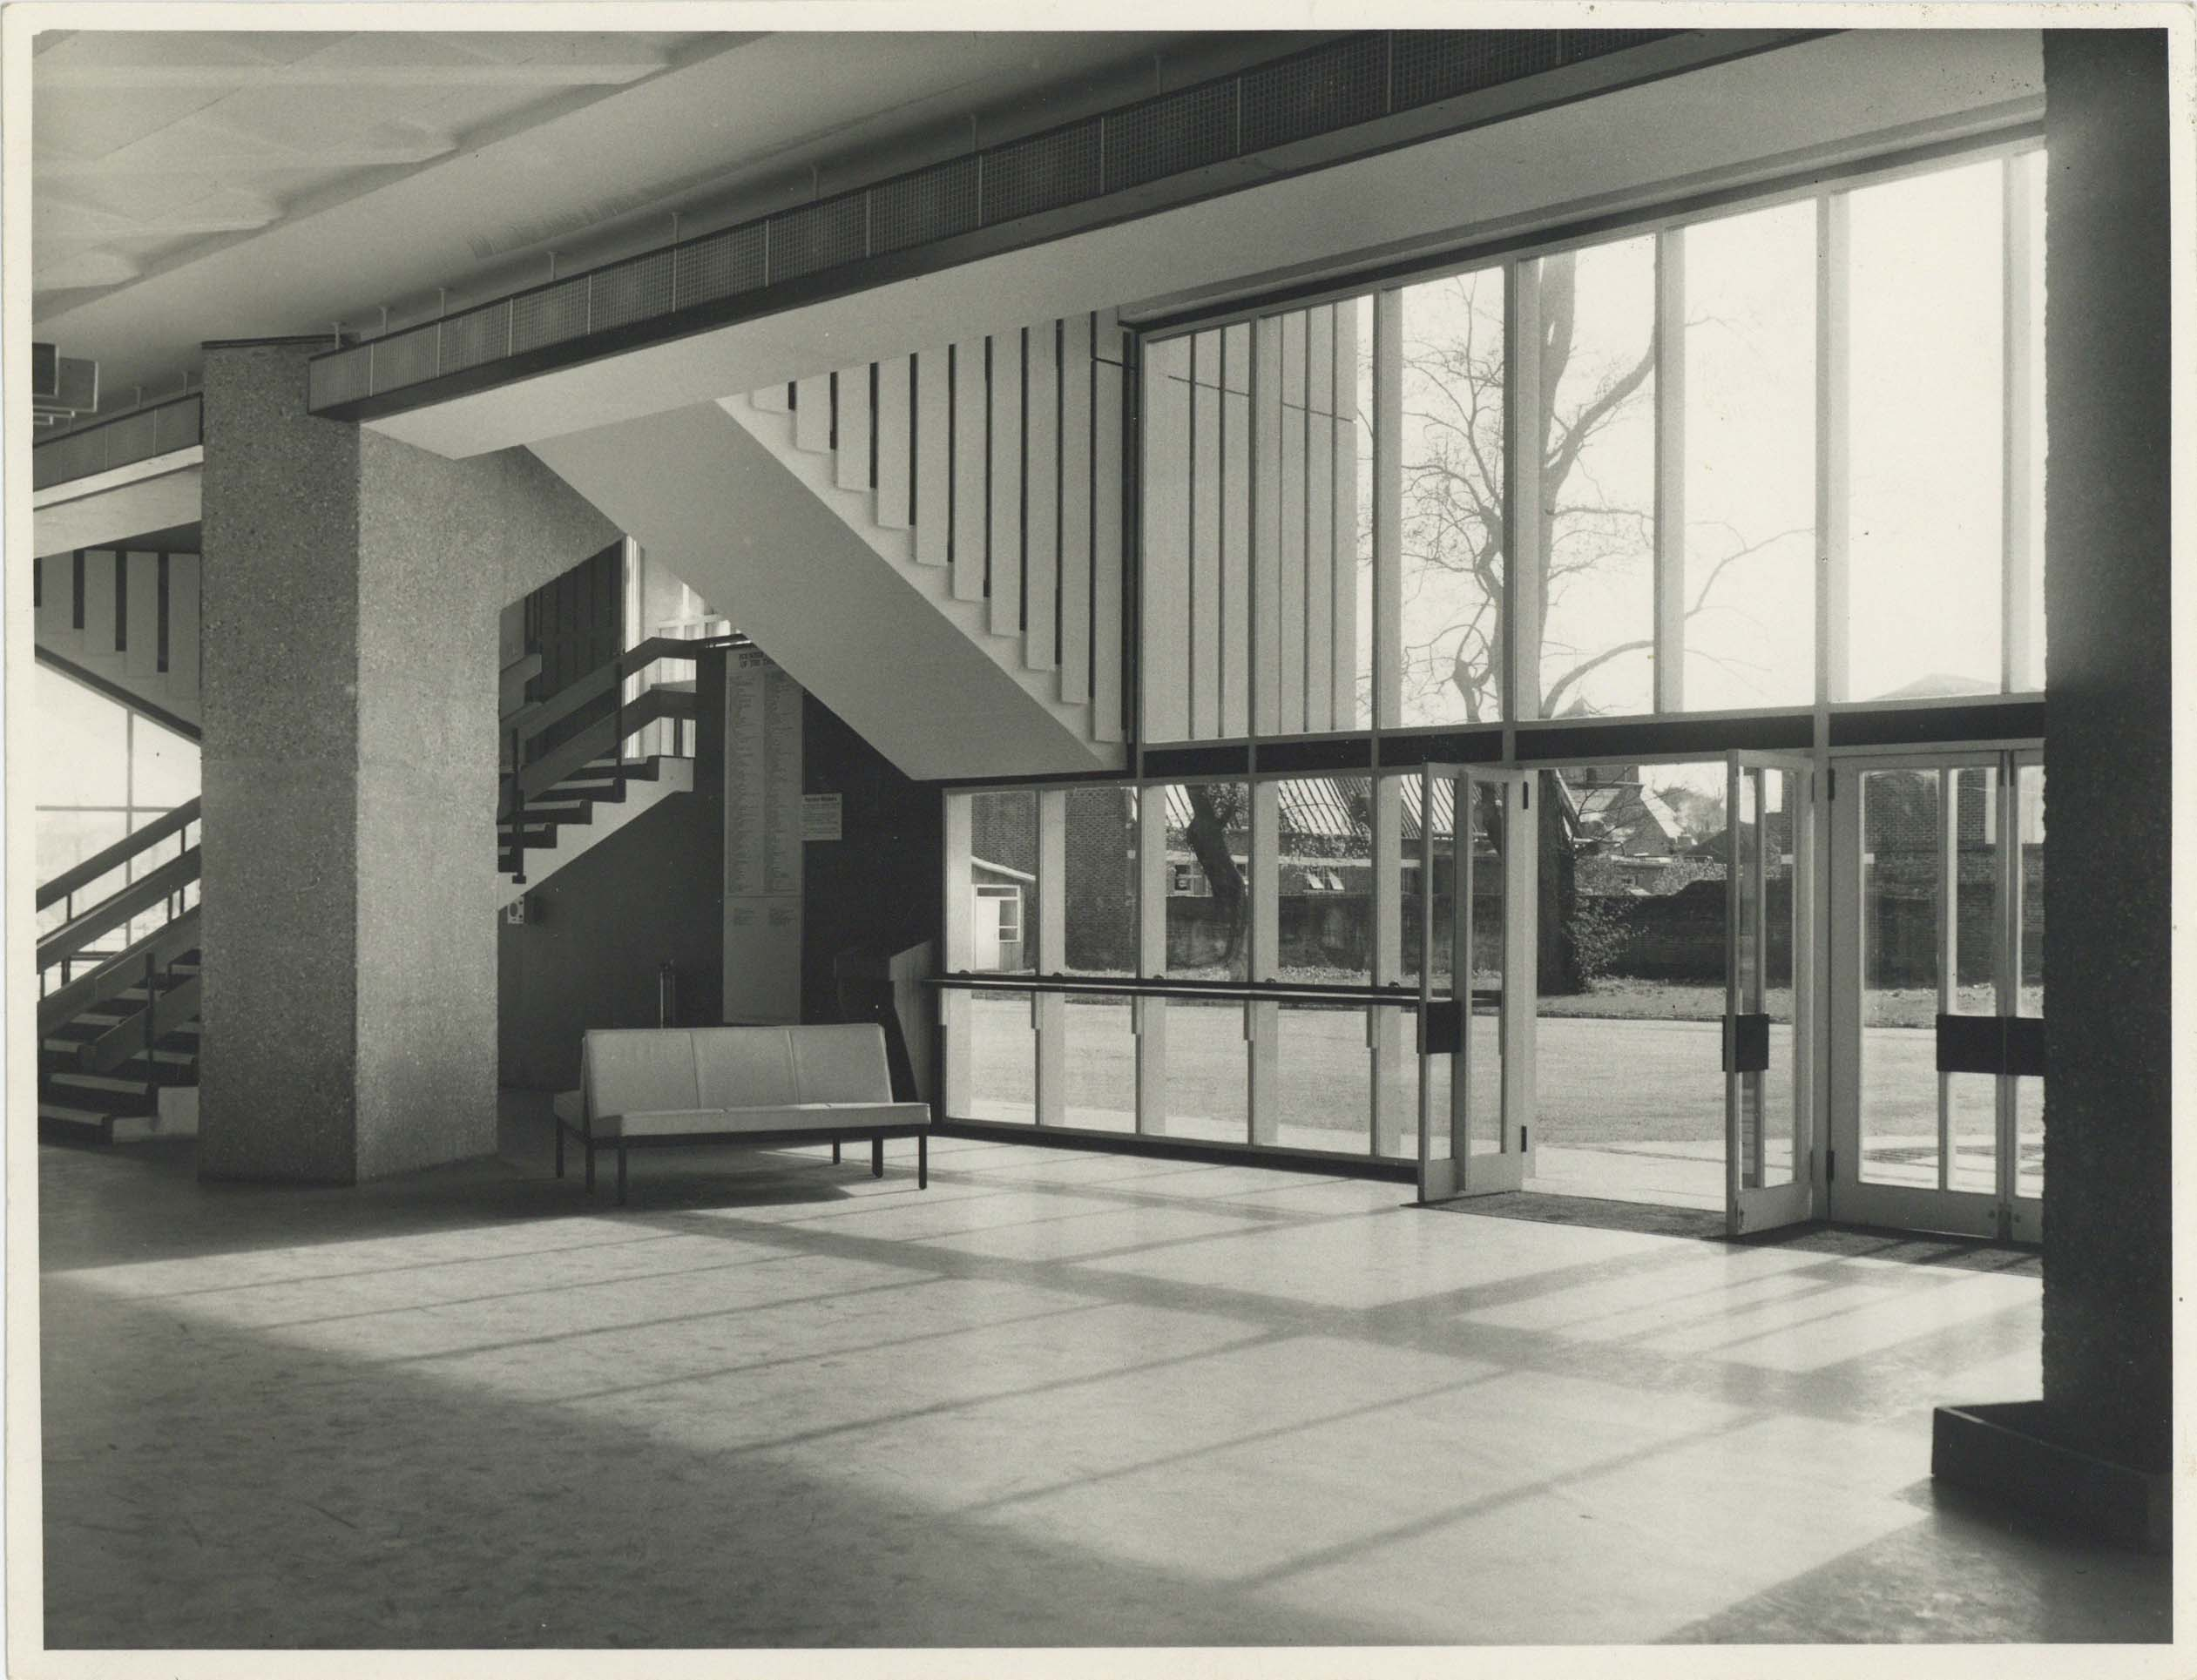 Photograph Interior Foyer - Photographer unknown - Date unknown - Box 71 CFT WSRO - H21xW16cm